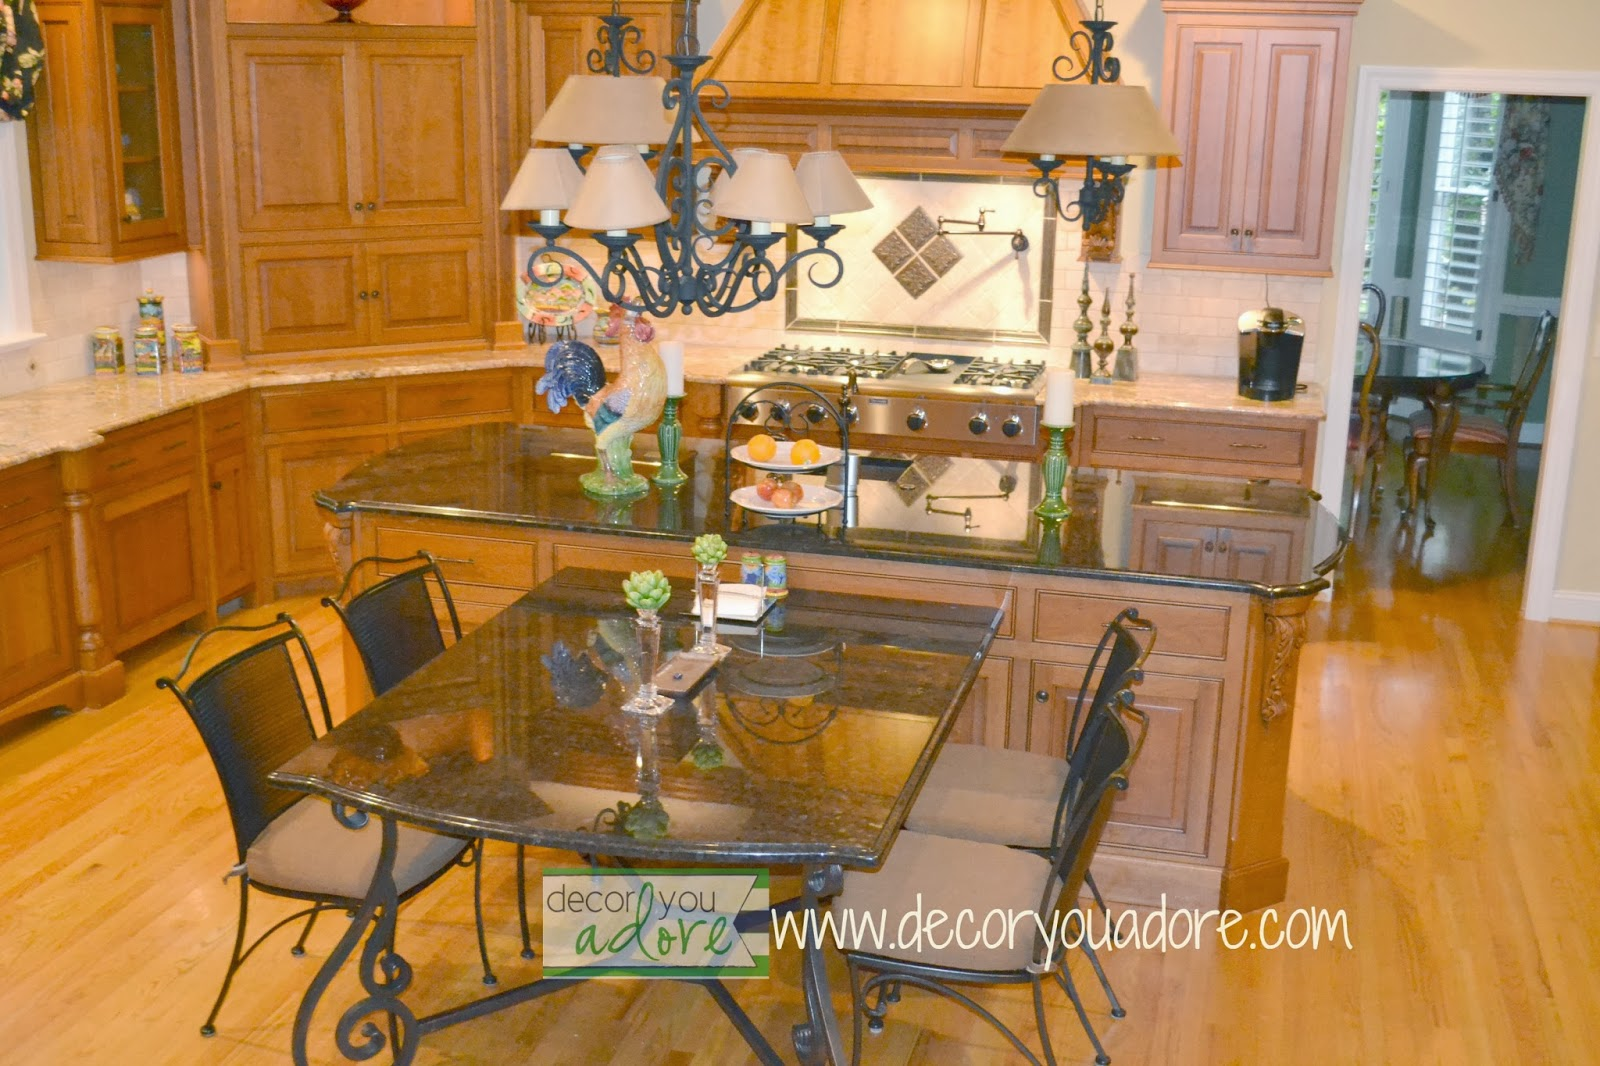 Decor You Adore Dream Kitchen Remodel With All The Bells And Whistles